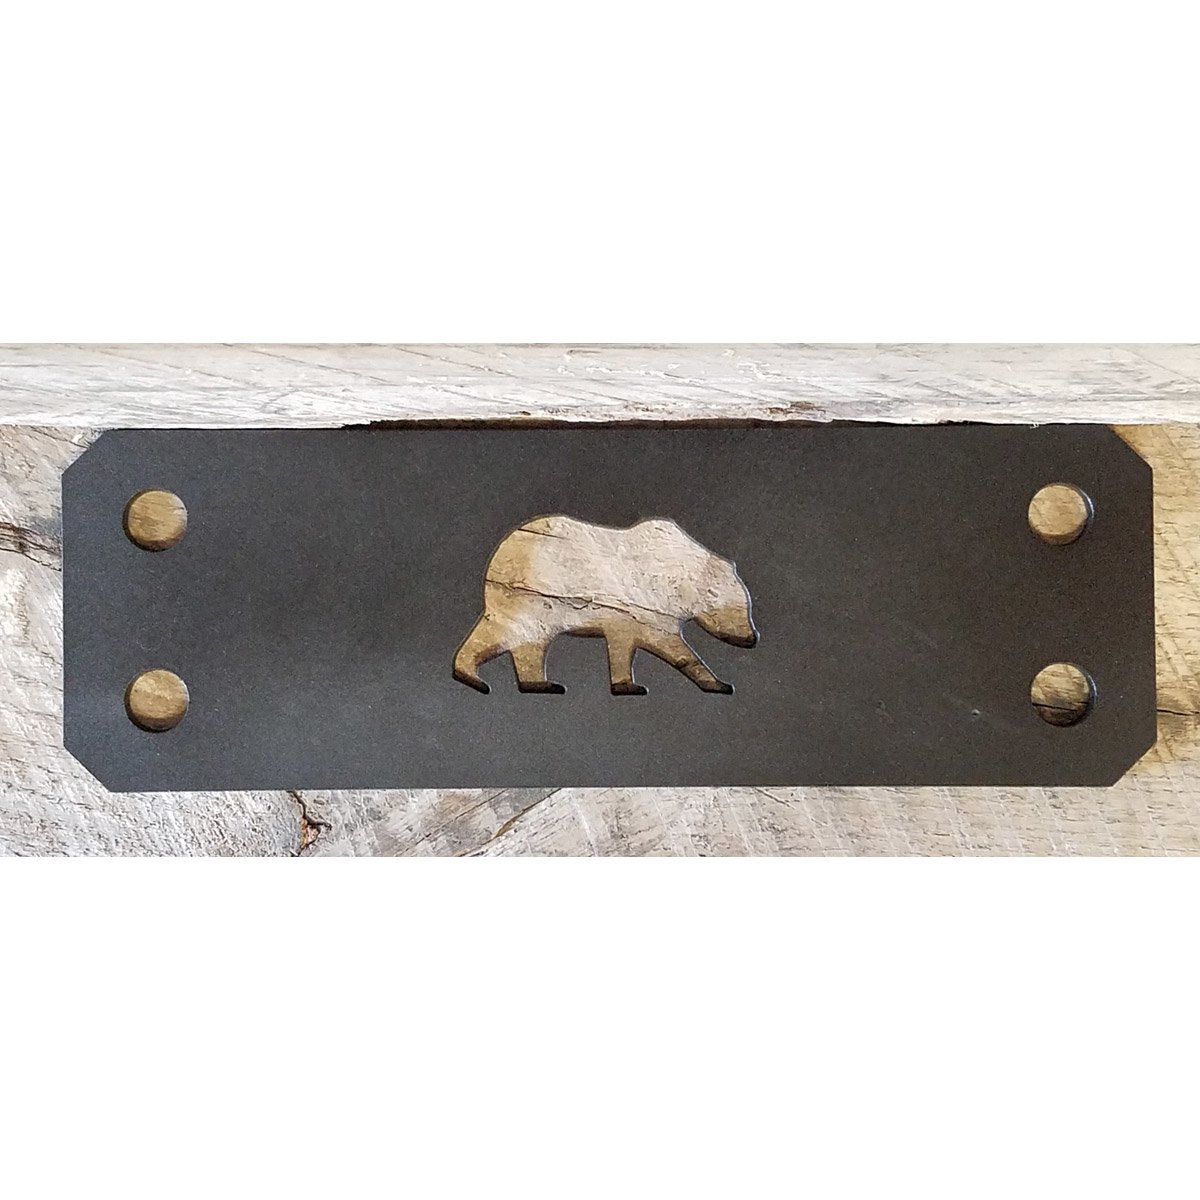 Decorative Timber Connecting Bracket with a Bear Cut Out